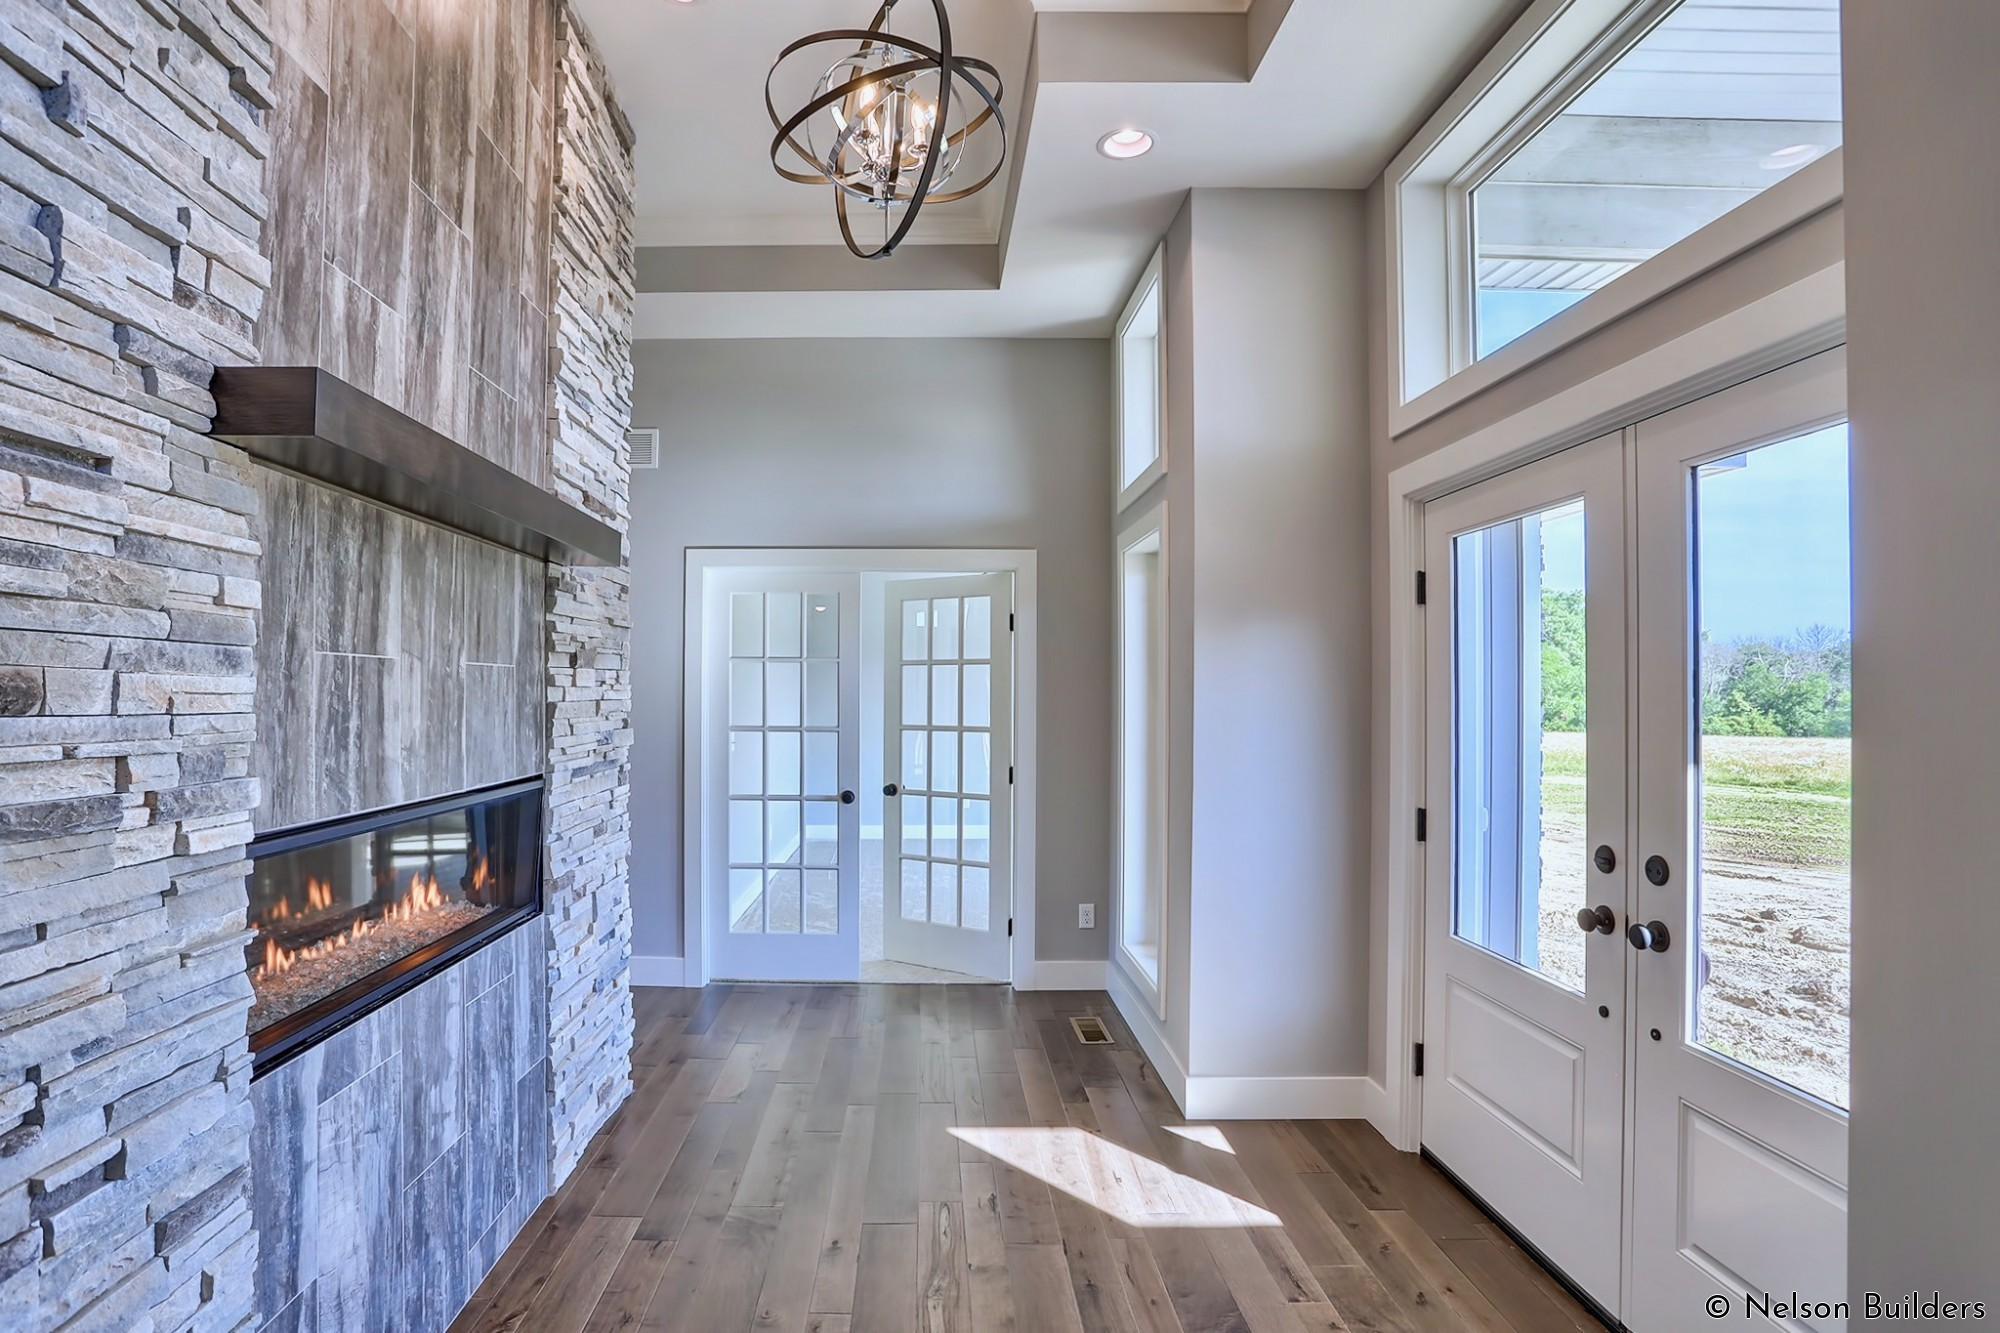 The fireplace is one of the main features of this home from the moment you walk into the glass-lined foyer.